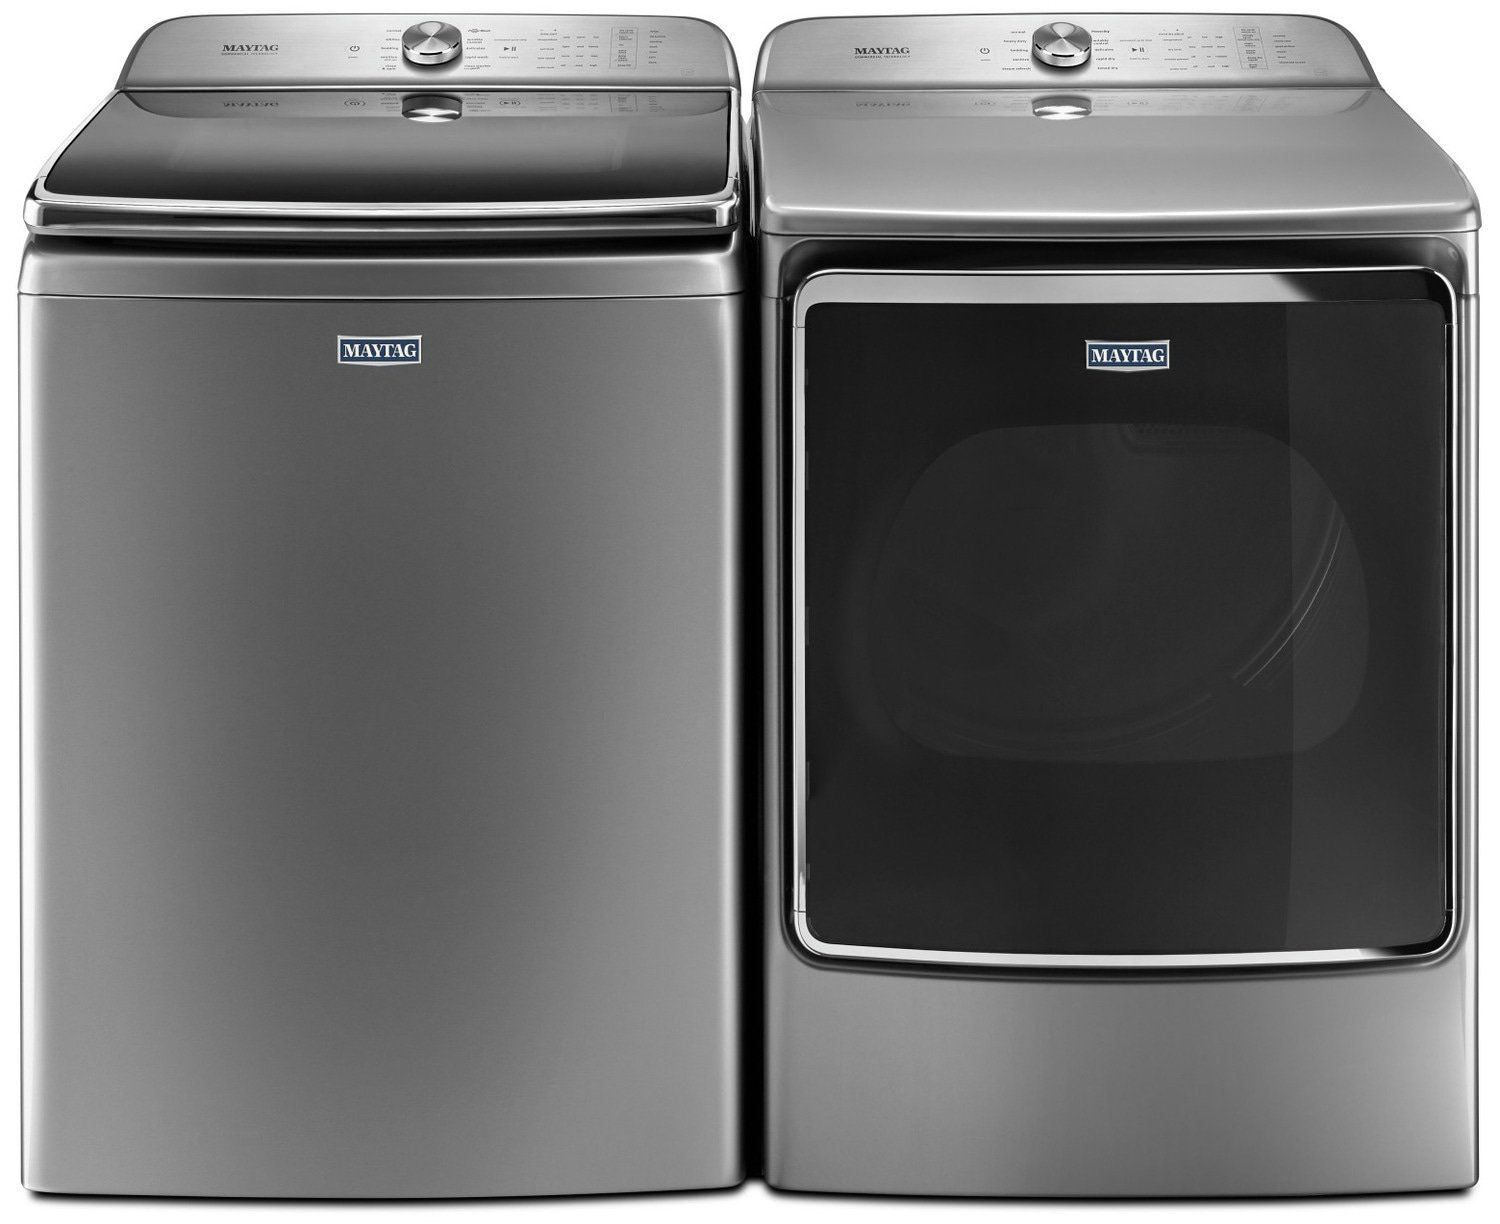 Maytag 7 1 Cu Ft Top Load Washer And 7 0 Cu Ft Dryer Grey The Brick Top Load Washing Machine Top Load Washer Maytag Washer And Dryer